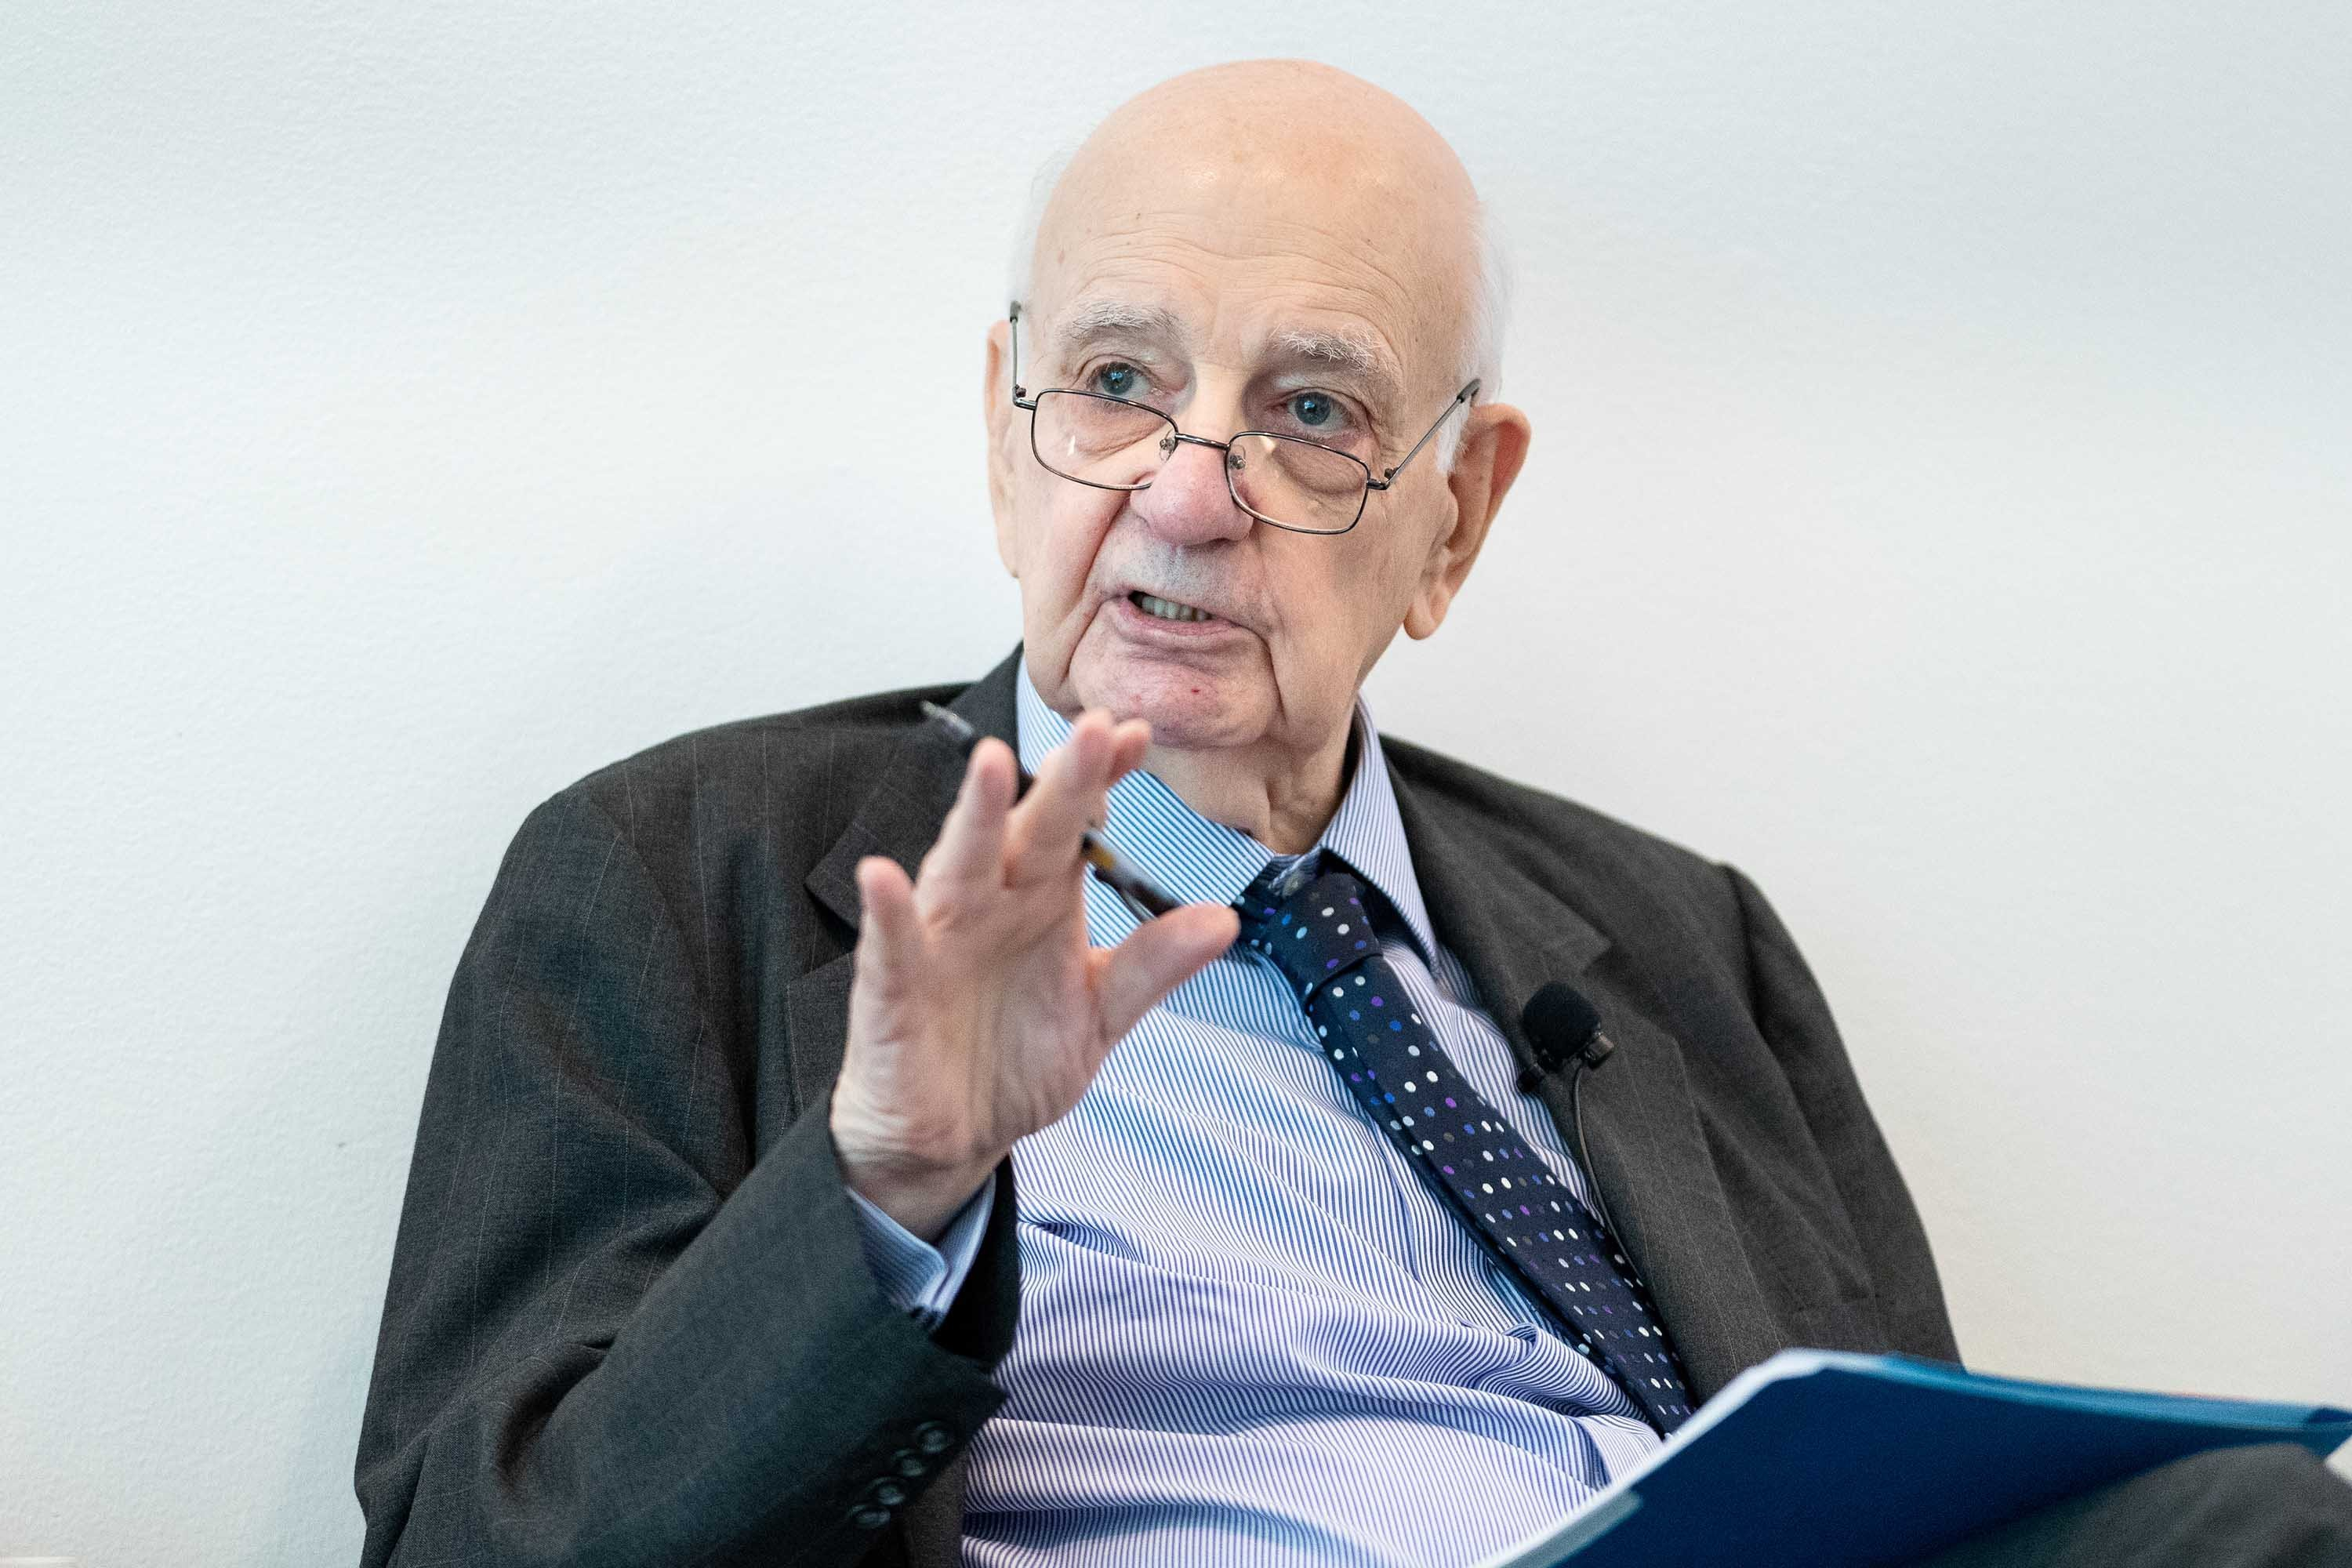 Paul Volcker, former Fed chairman who fought inflation, dies at 92